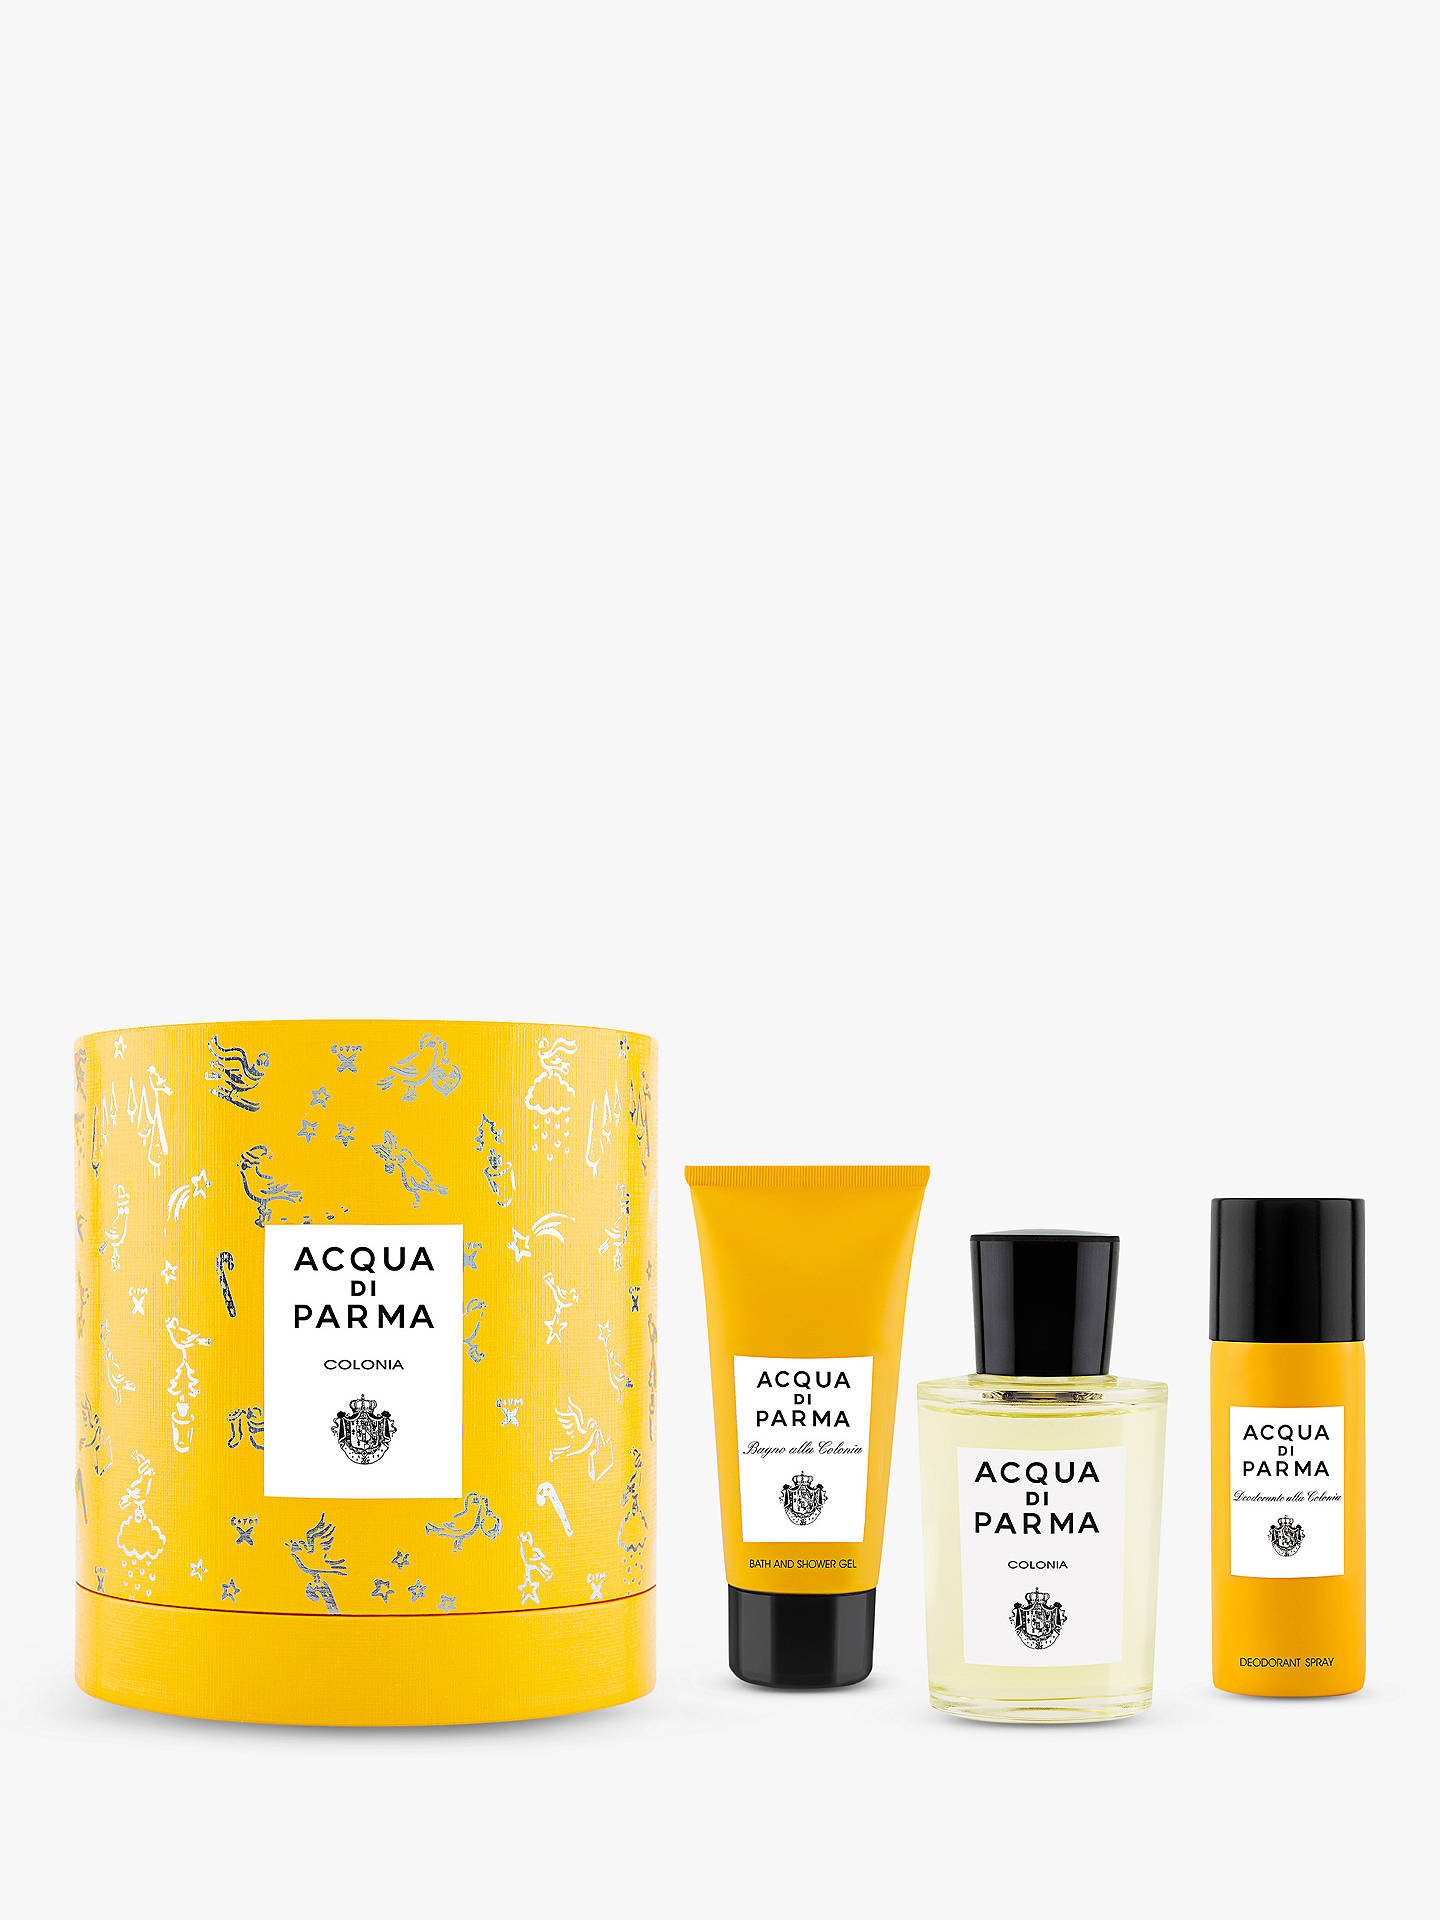 BuyAcqua di Parma Colonia 100ml Eau de Cologne Fragrance Gift Set Online at johnlewis.com